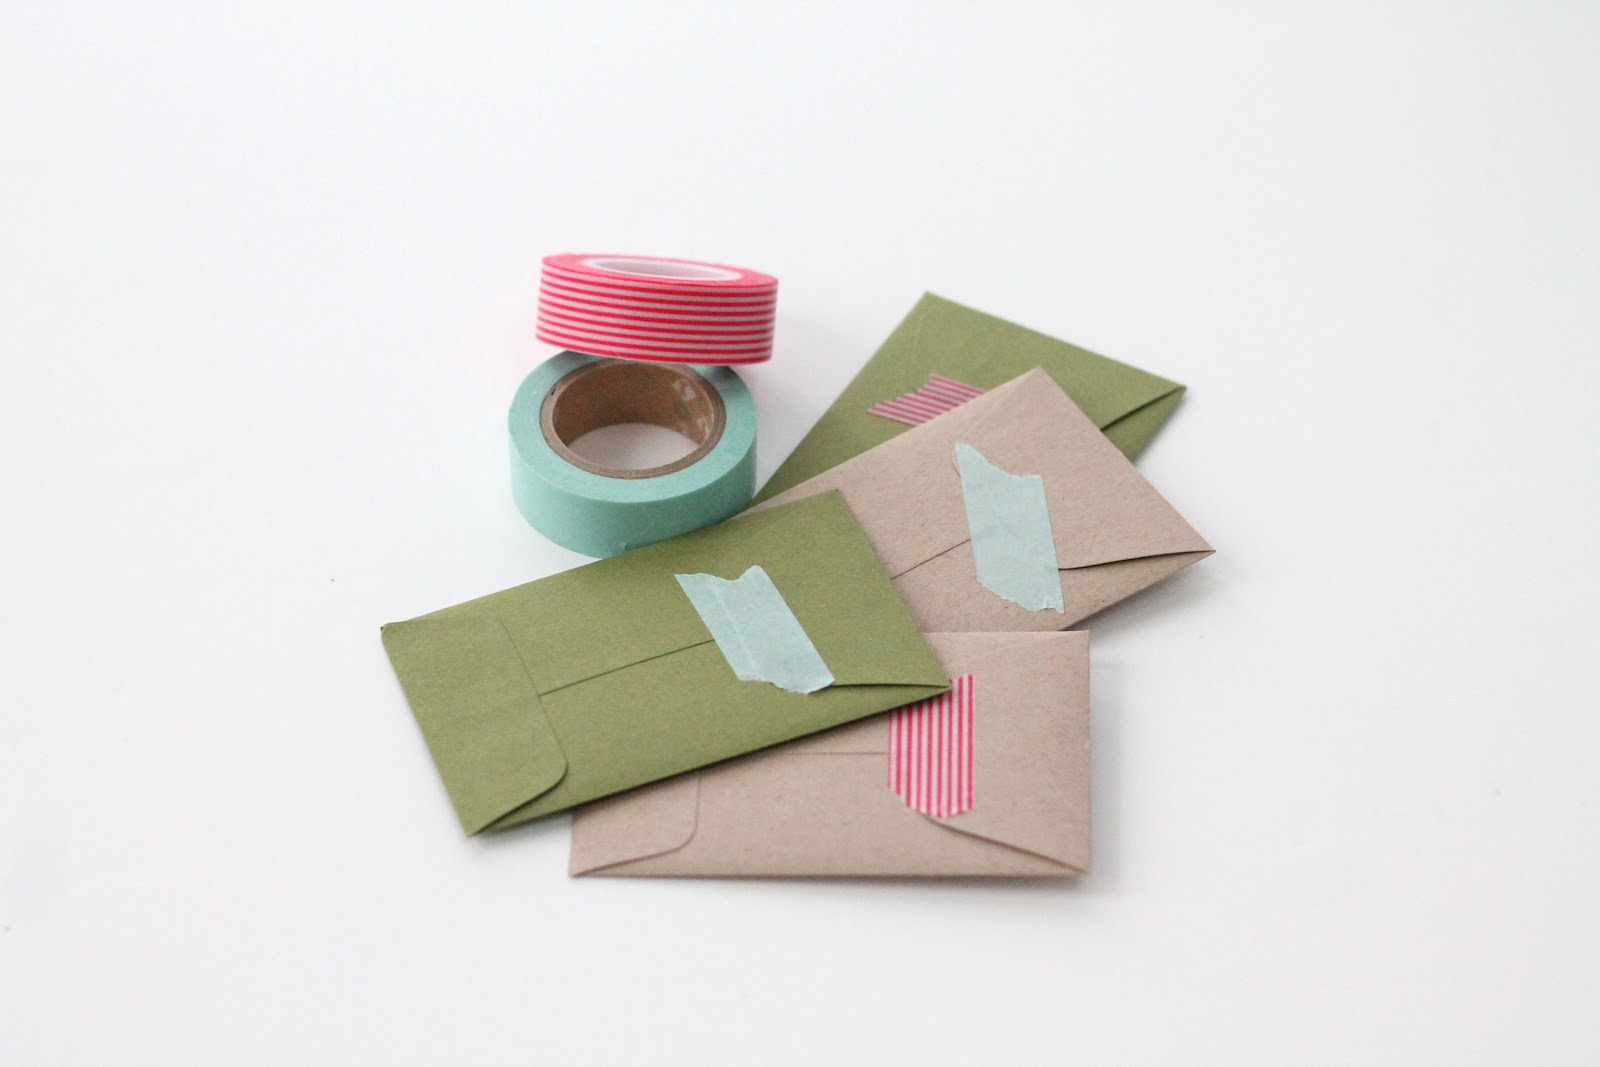 But gift givers can go beyond the envelope with creative ways to wrap their gift cards.